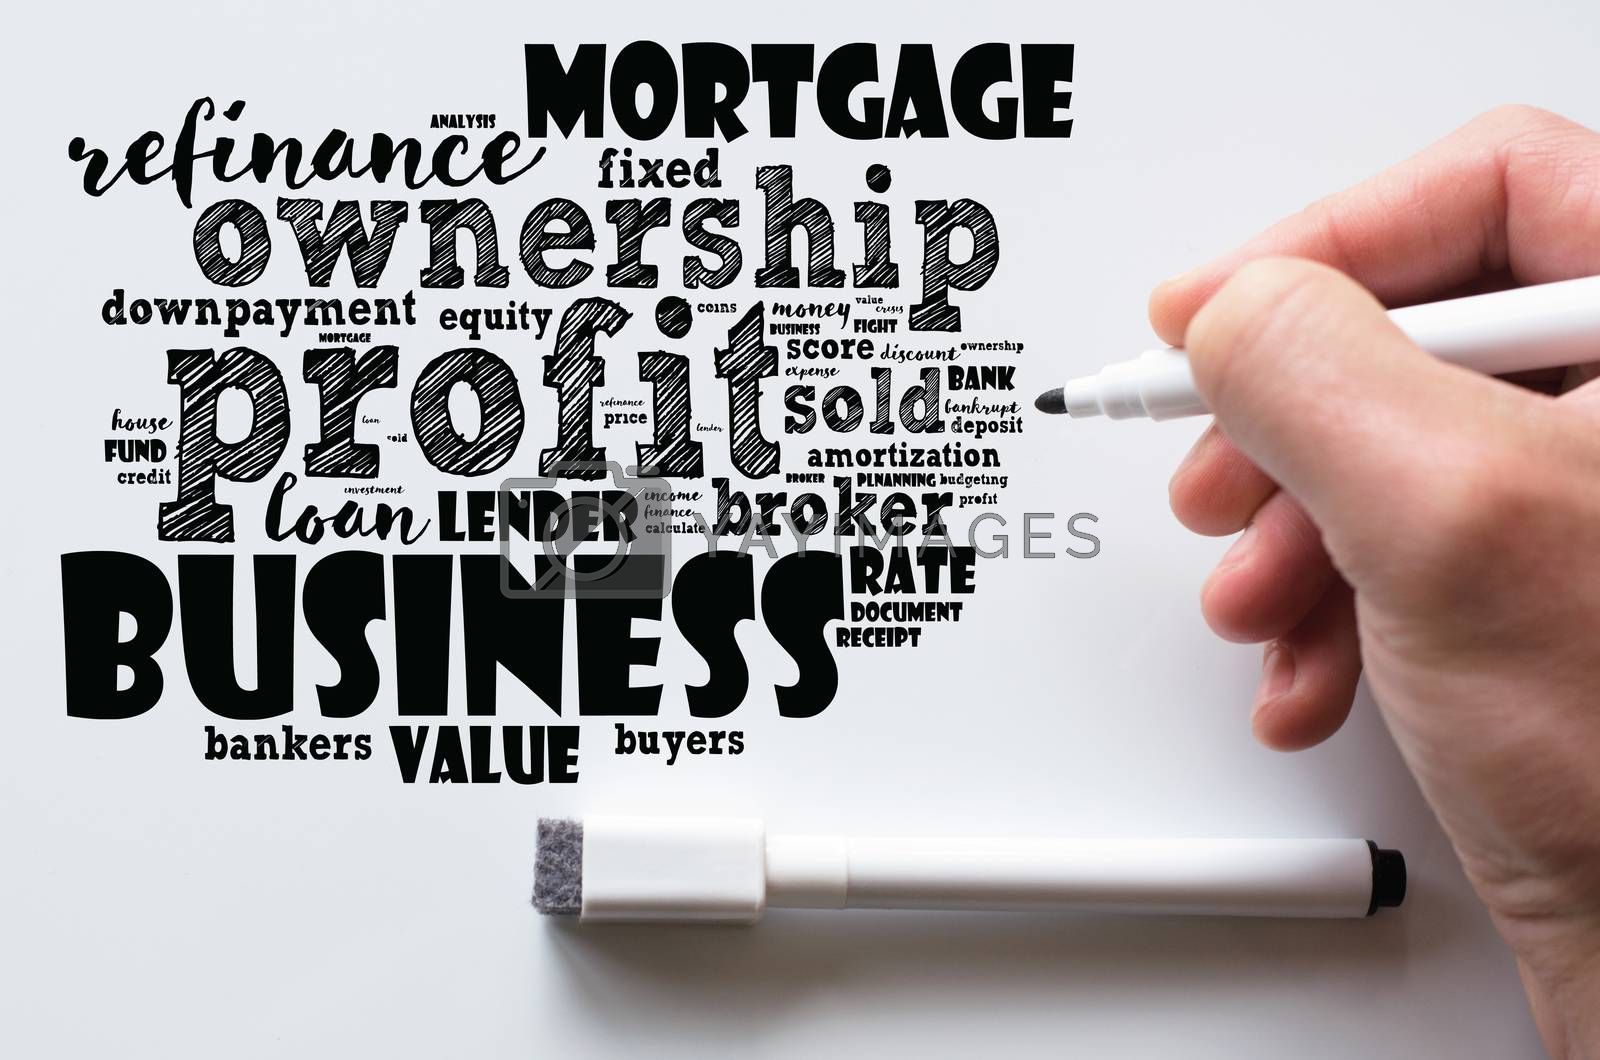 Profit word cloud collage over whiteboard background